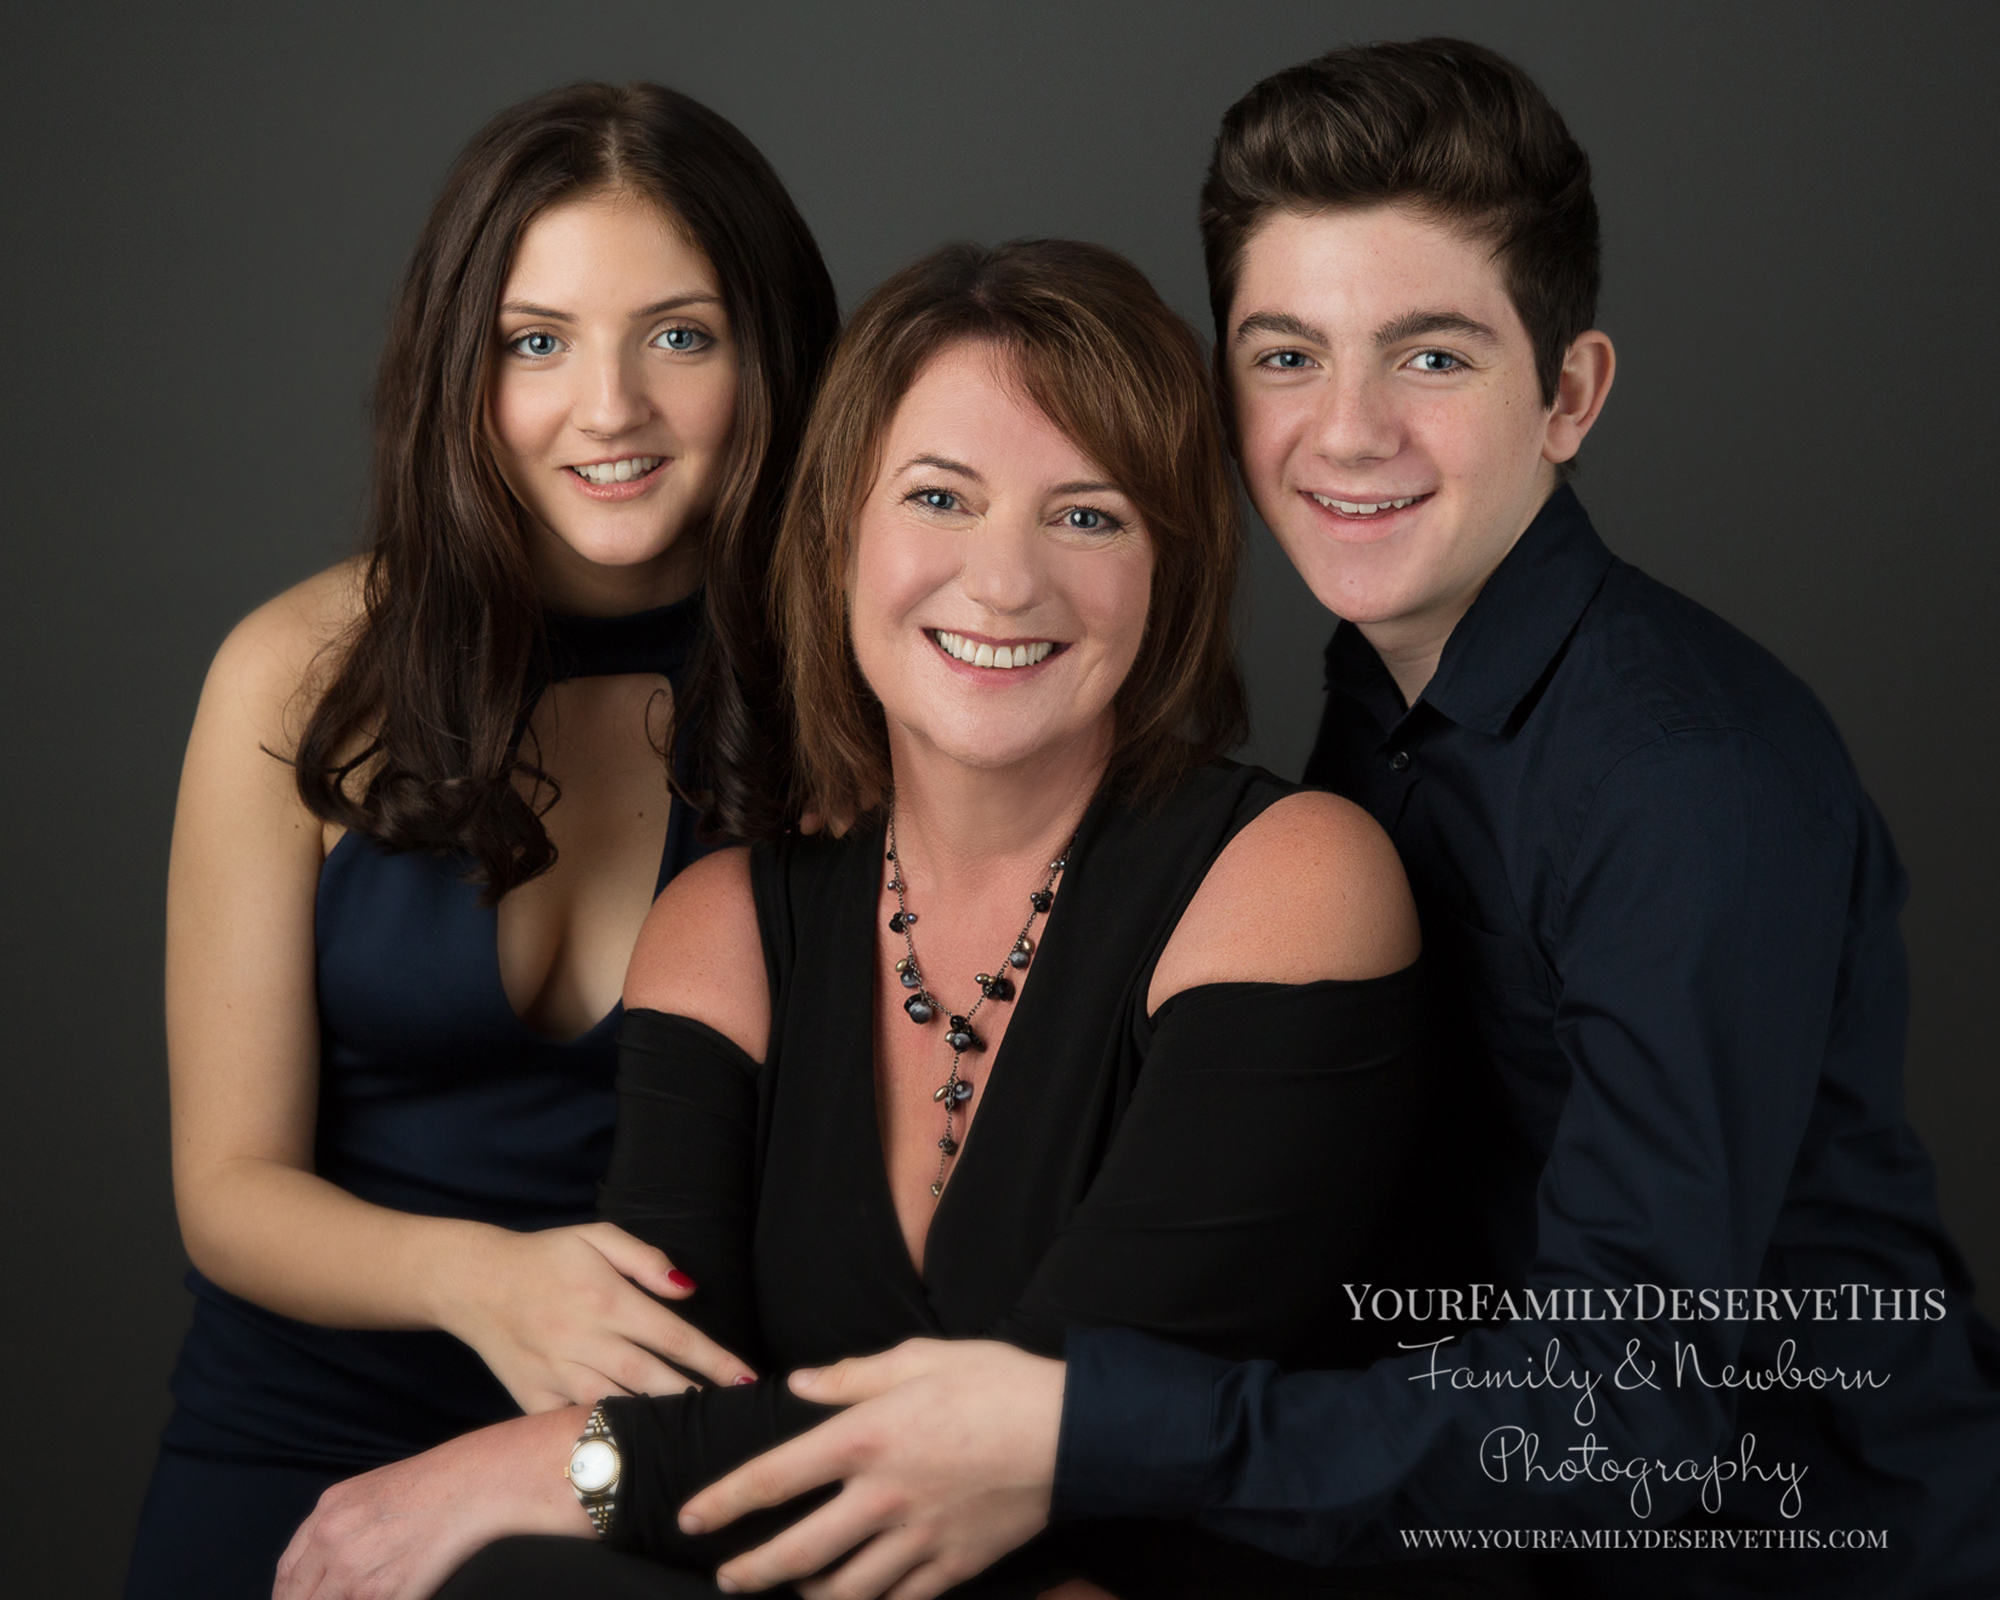 For family groups up to 8 people, a fabulous studio session to capture everyone at their best and create great memories to treasure forever.